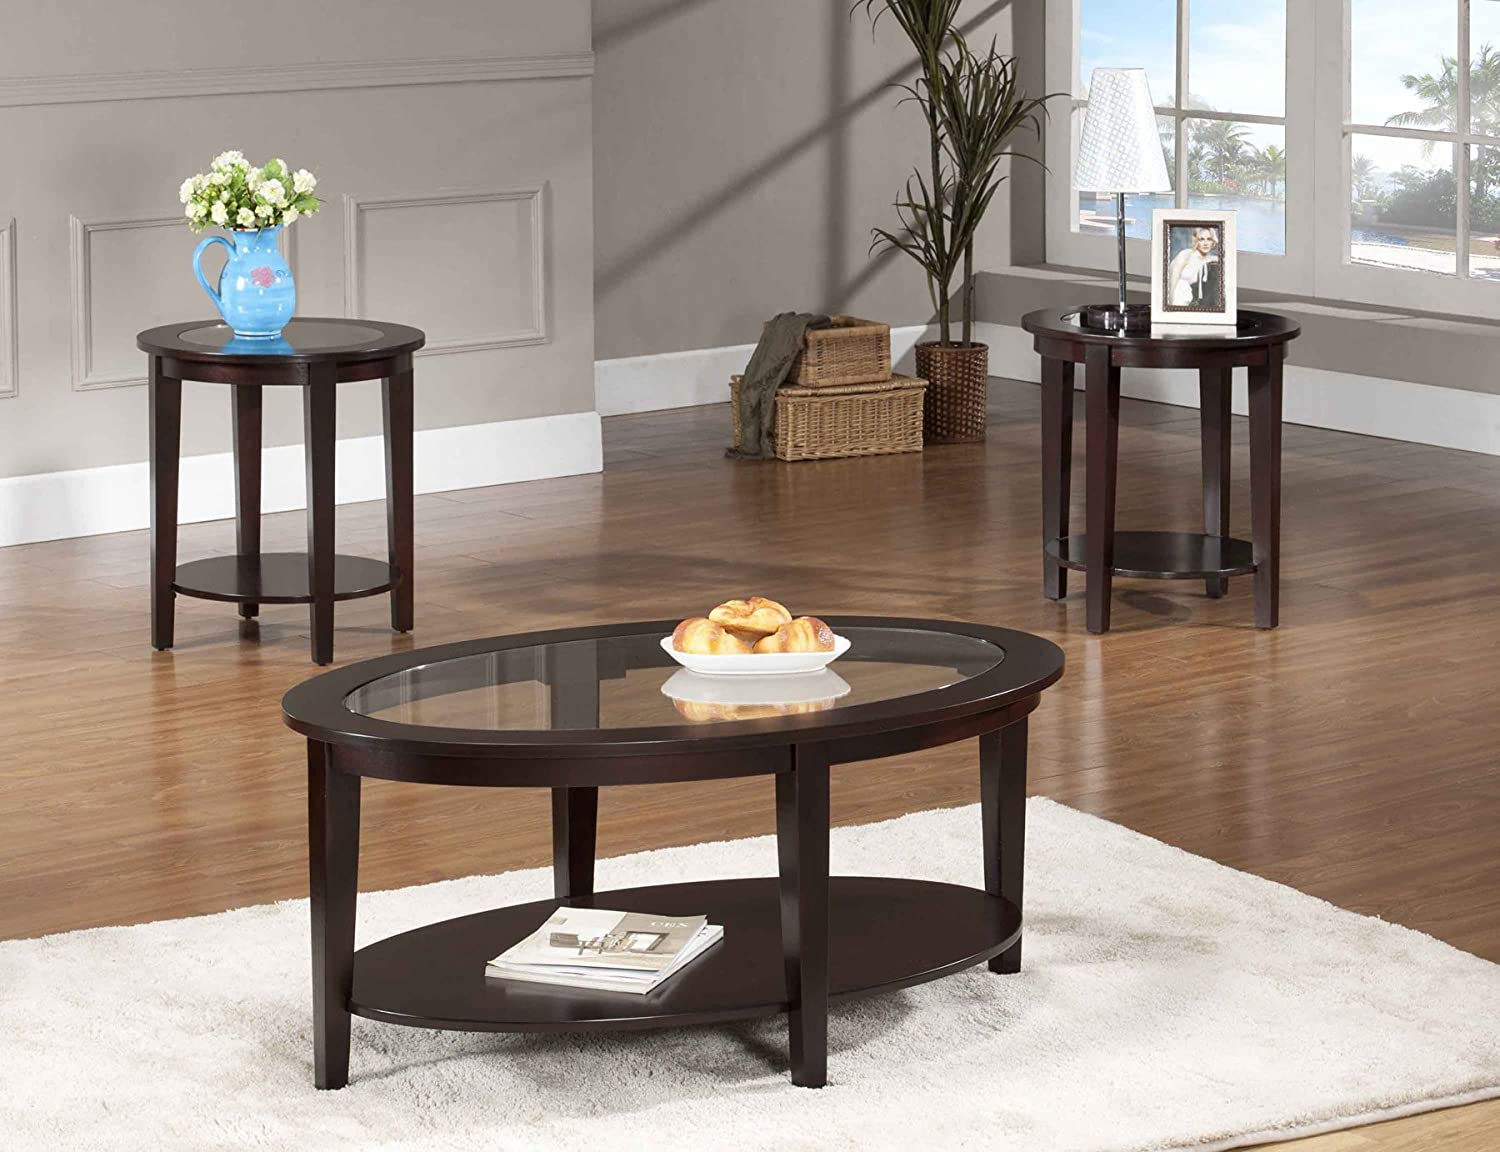 Amazon.com: Beverly Furniture Oval Modern Glass 3 Piece Coffee Table Set:  Kitchen U0026 Dining